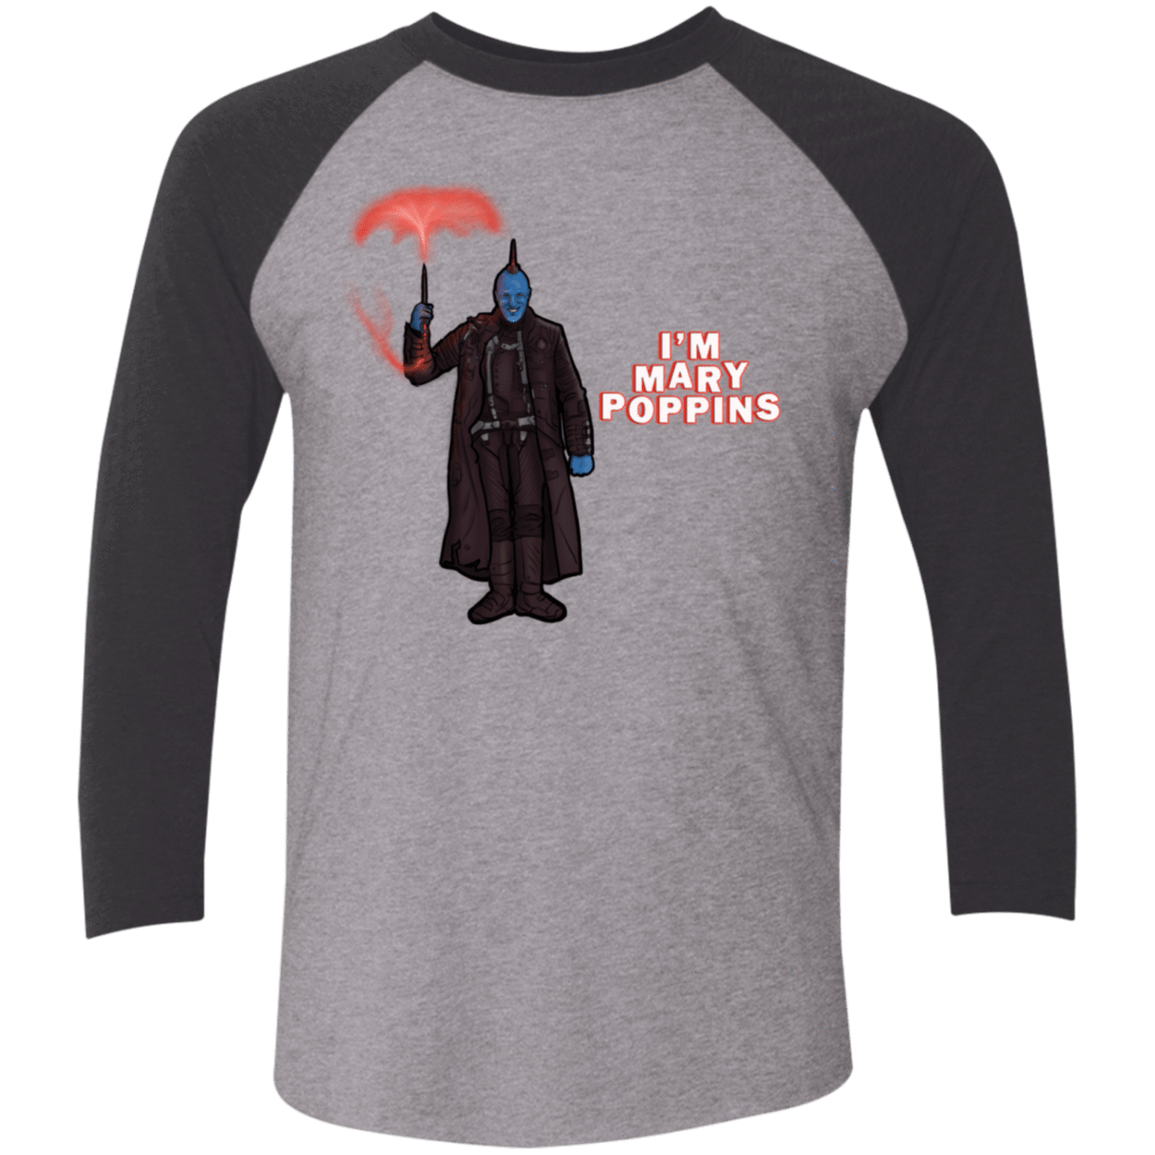 T-Shirts Premium Heather/Vintage Black / X-Small Yondu Poppins Men's Triblend 3/4 Sleeve